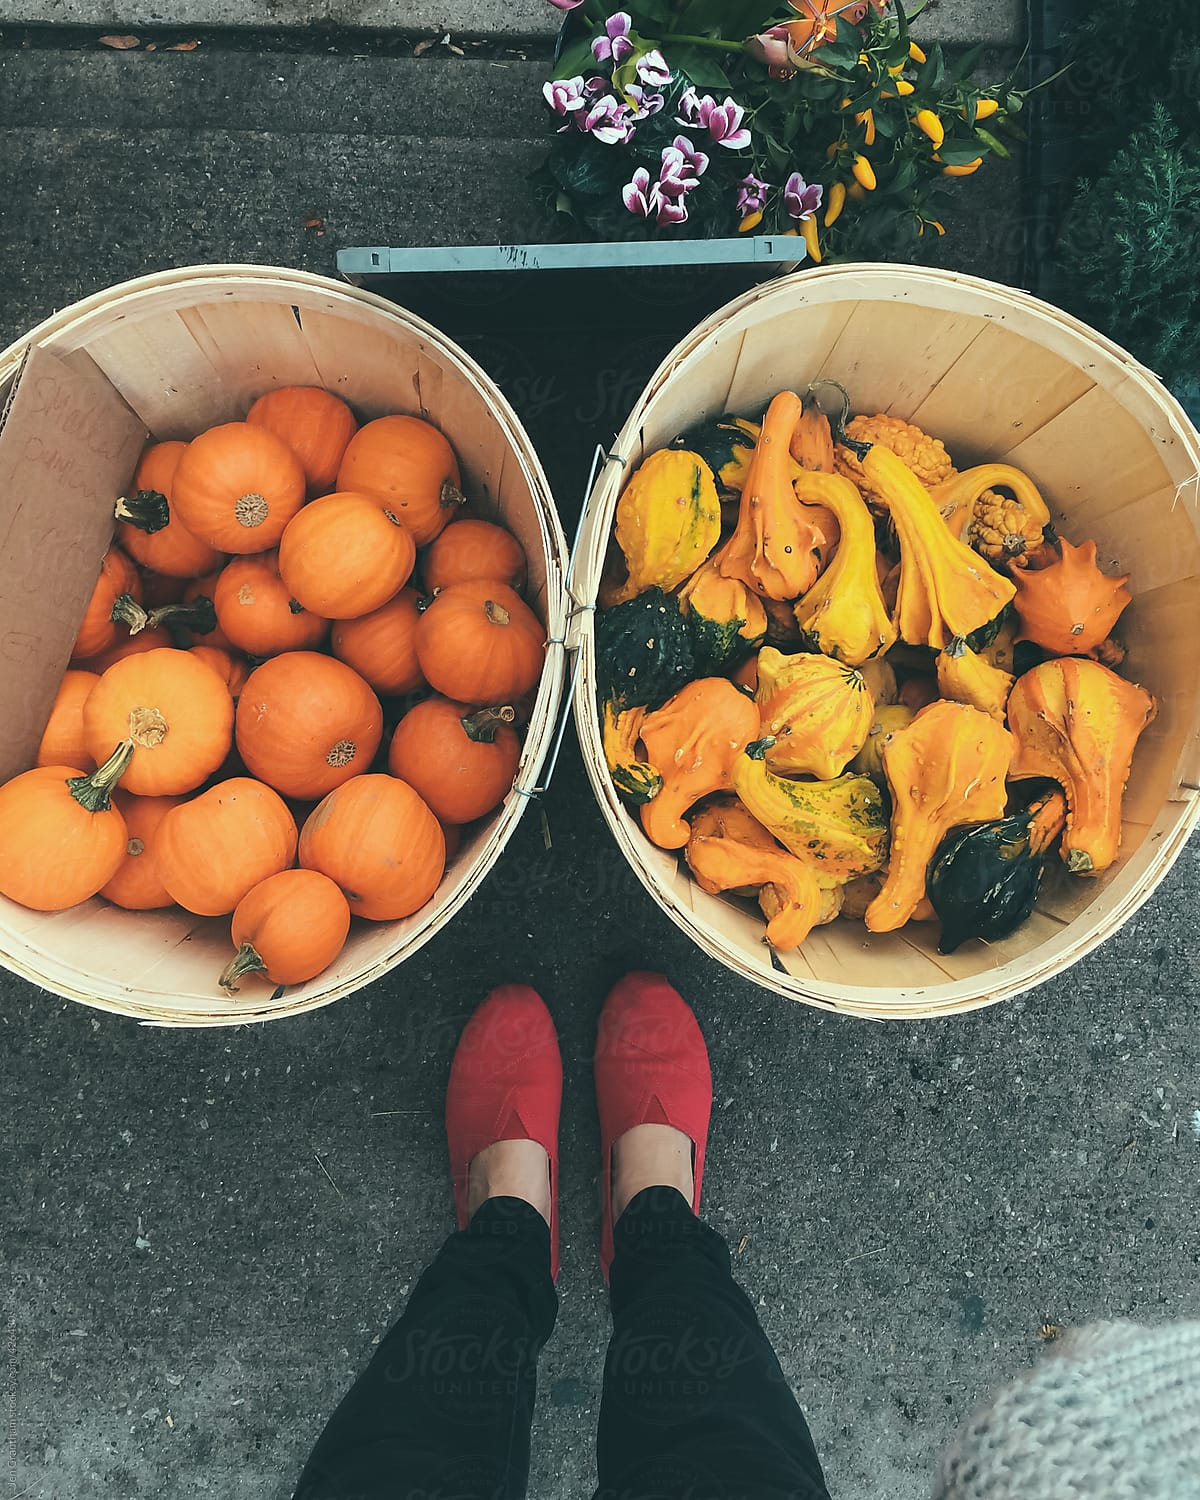 Pumpkins at outdoor market by Jen Grantham for Stocksy United